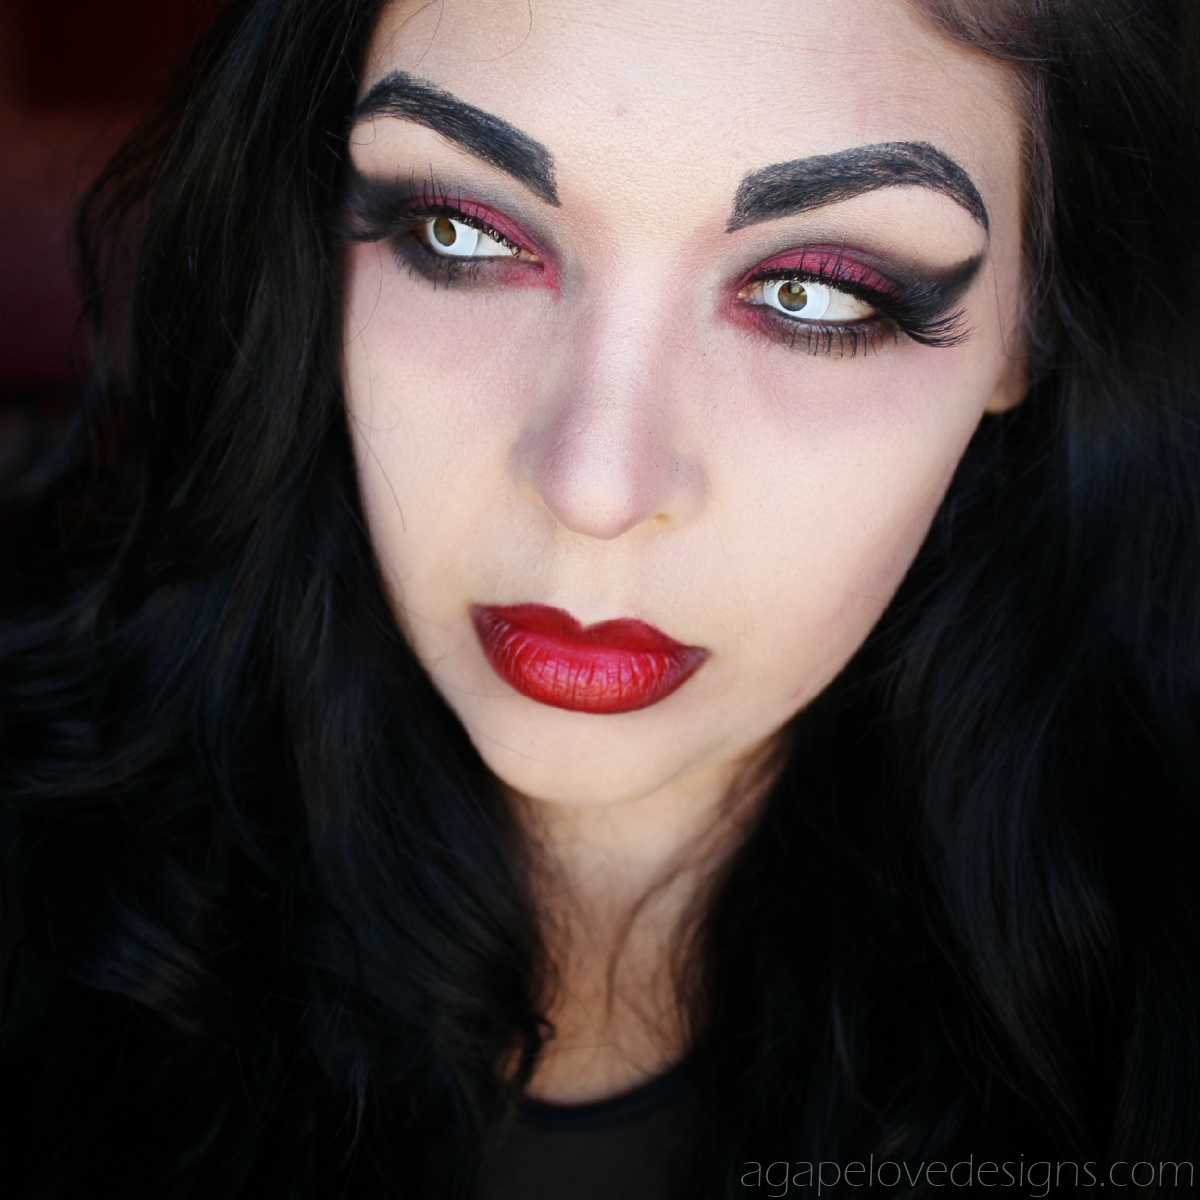 Thanks to makeup artist Sarah Ahmad, who runs the Instagram @beautanica, we've broken down each step to recreate this Victorian vampire makeup look. Watch the video above and follow along below.